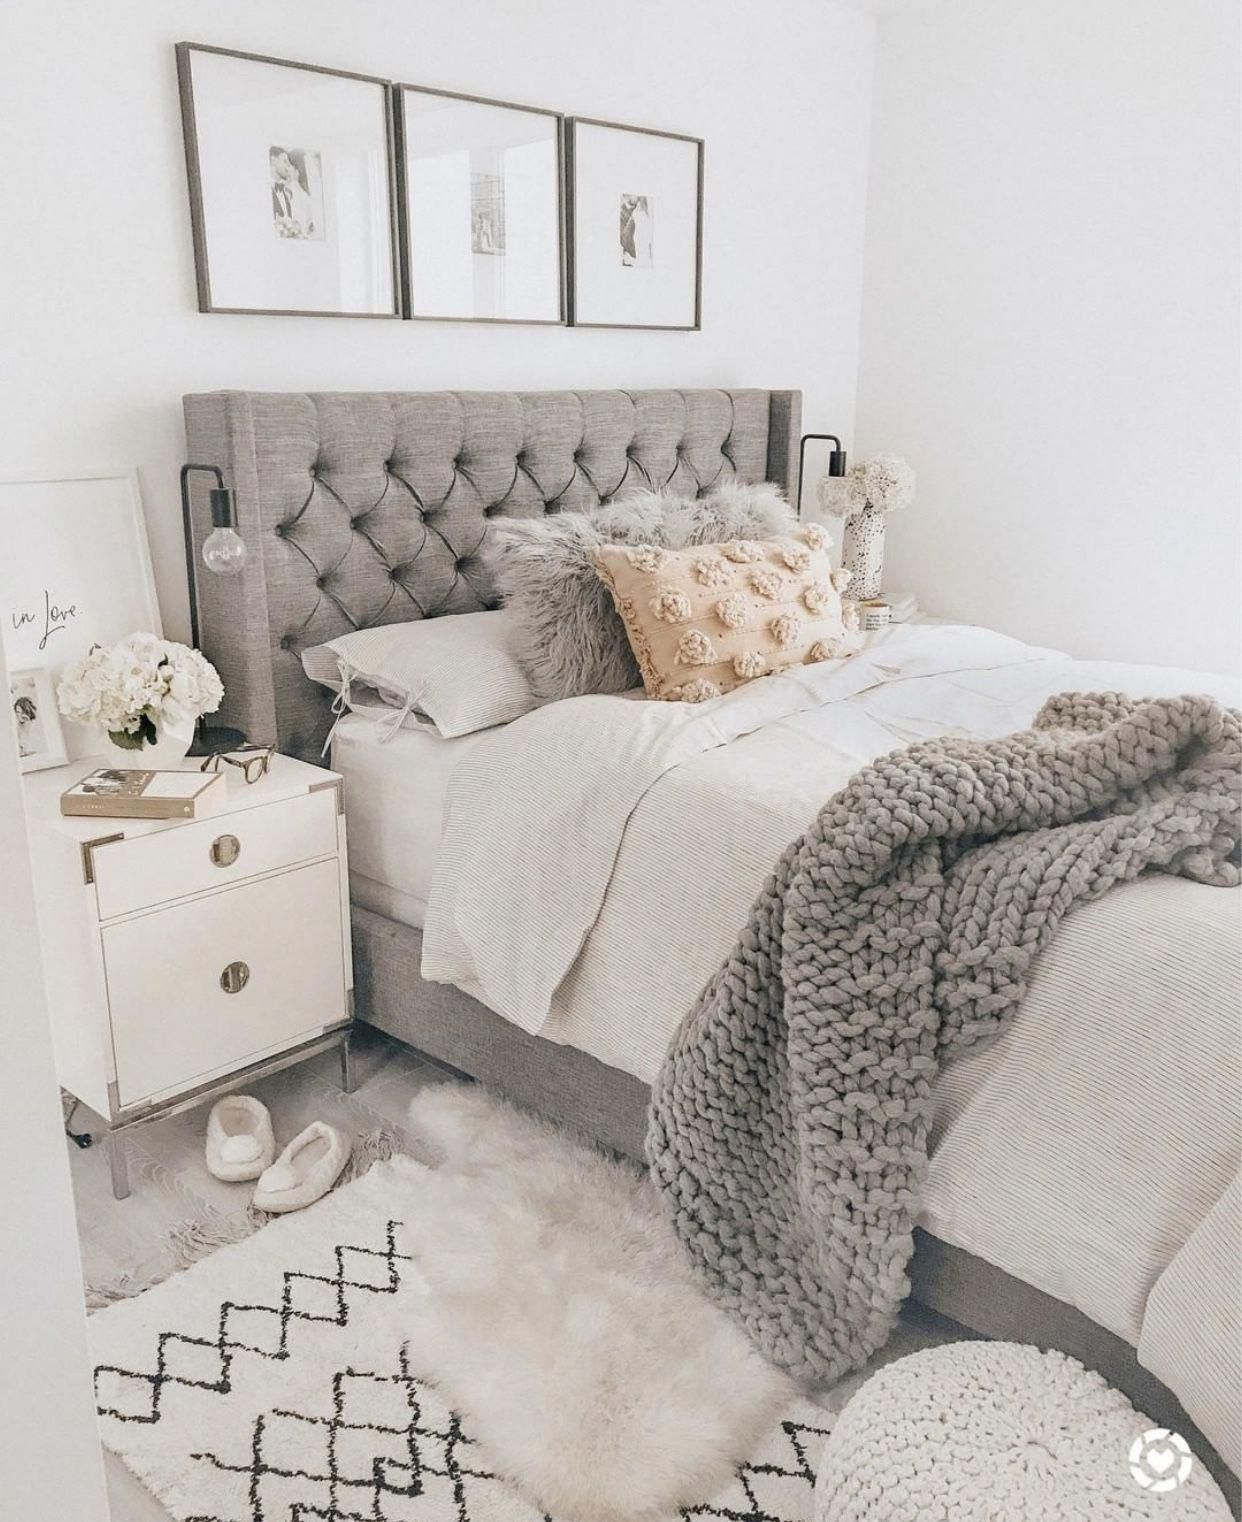 Pin By Sarah Hatch On Dream House In 2019 Bedroom Decor